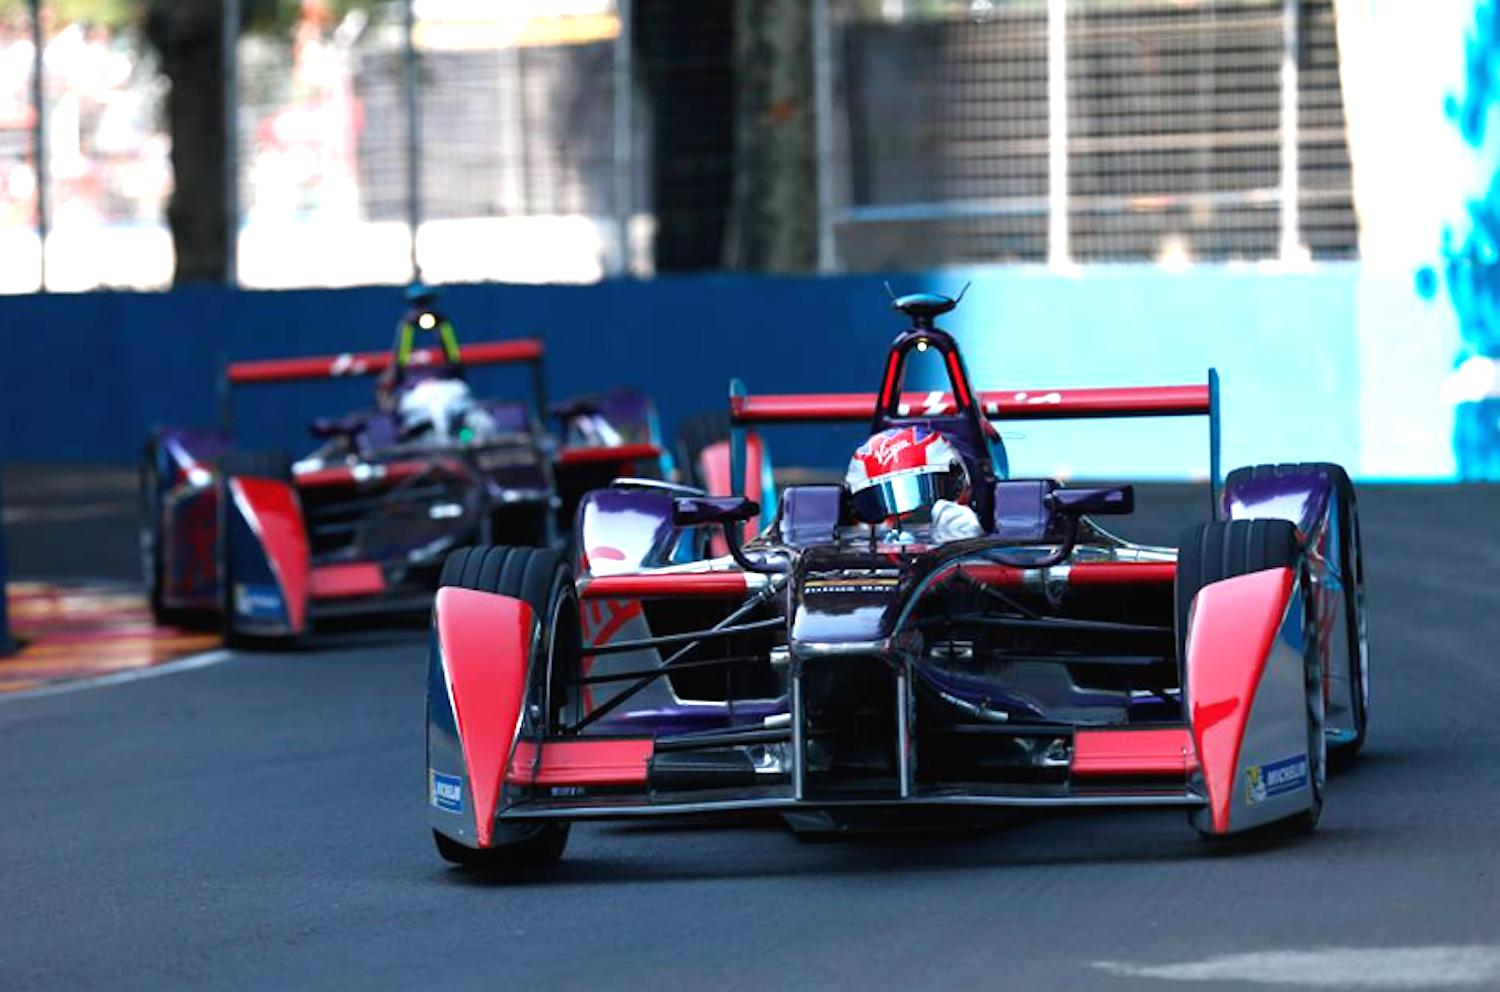 Robots, start your engines: Formula E plans race series for self-driving cars